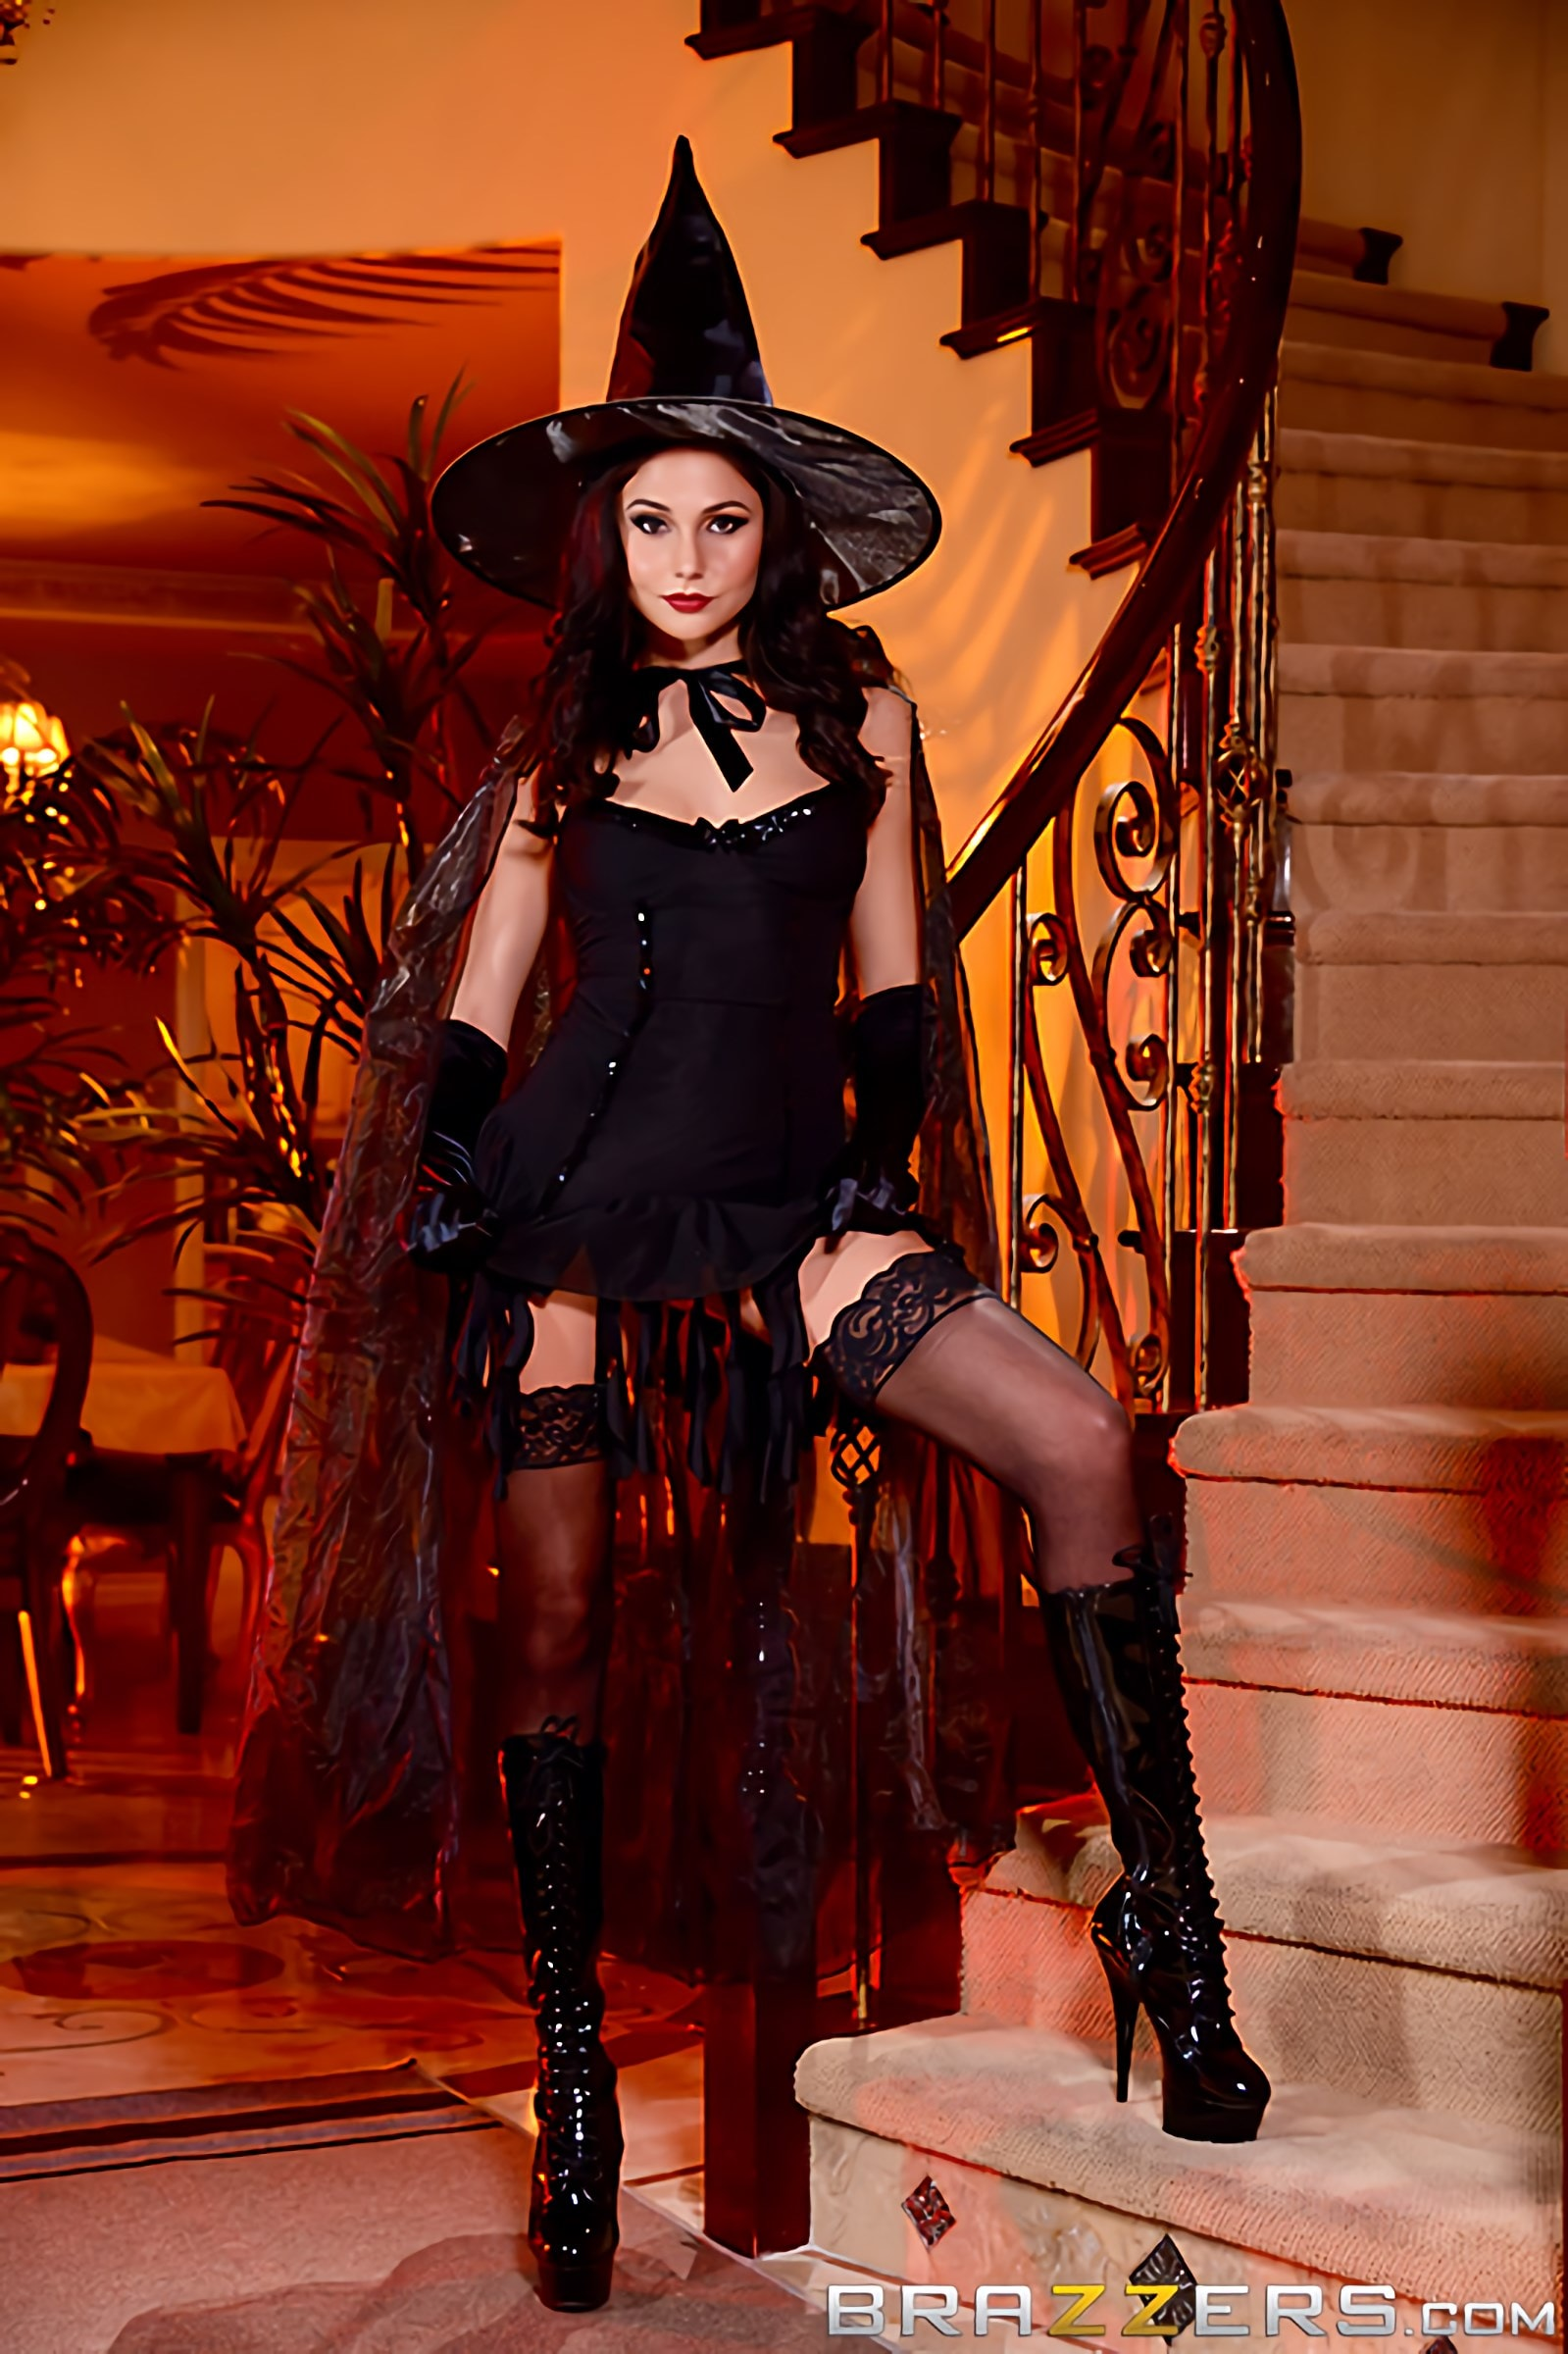 Brazzers 'Dick Or Treat' starring Ariana Marie (Photo 8)